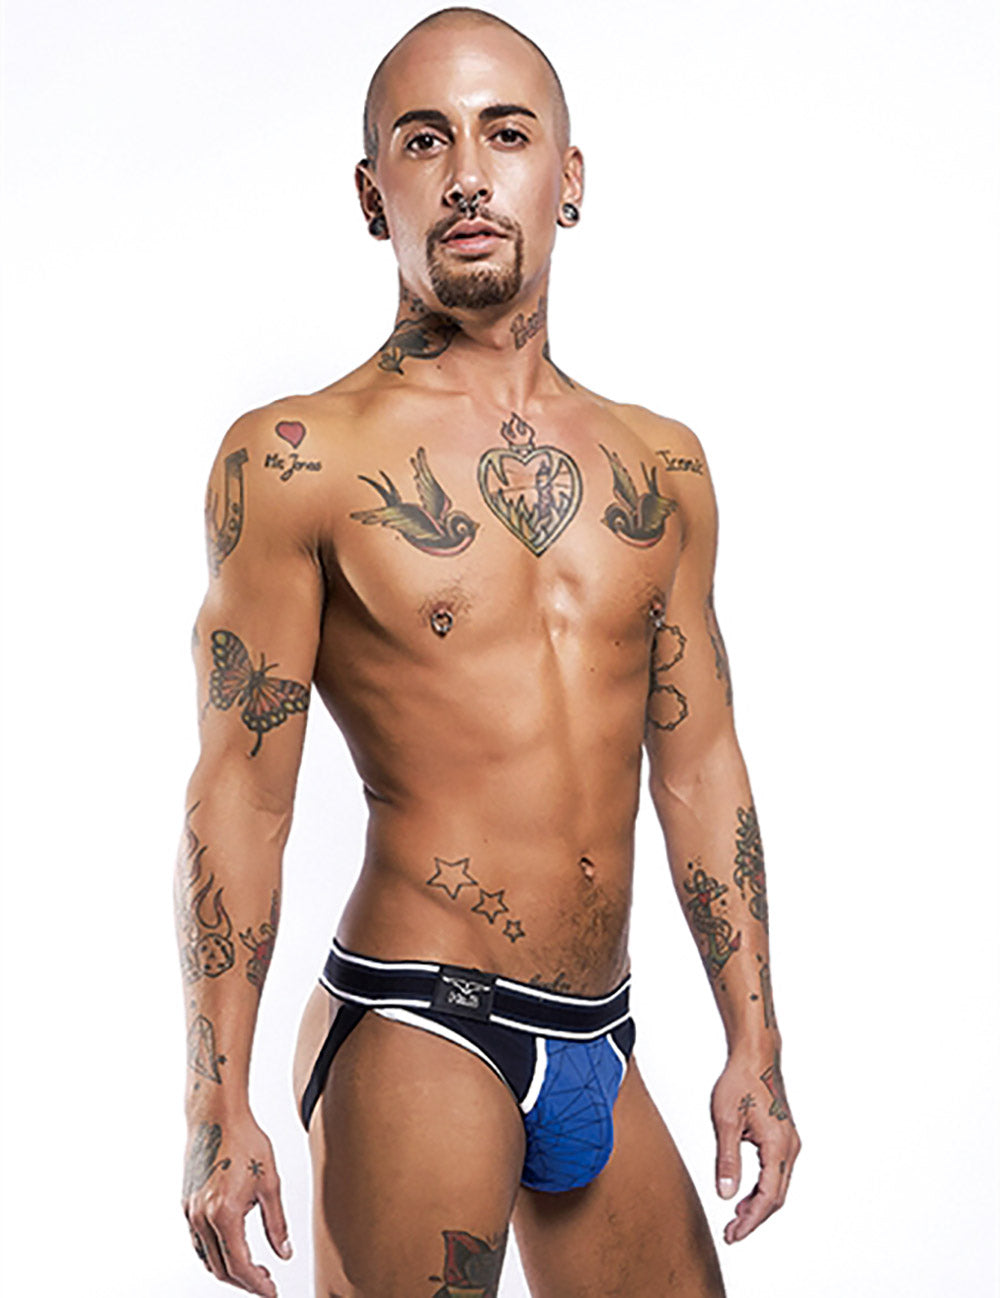 Mr B urban mission gay mens underwear jock blue side